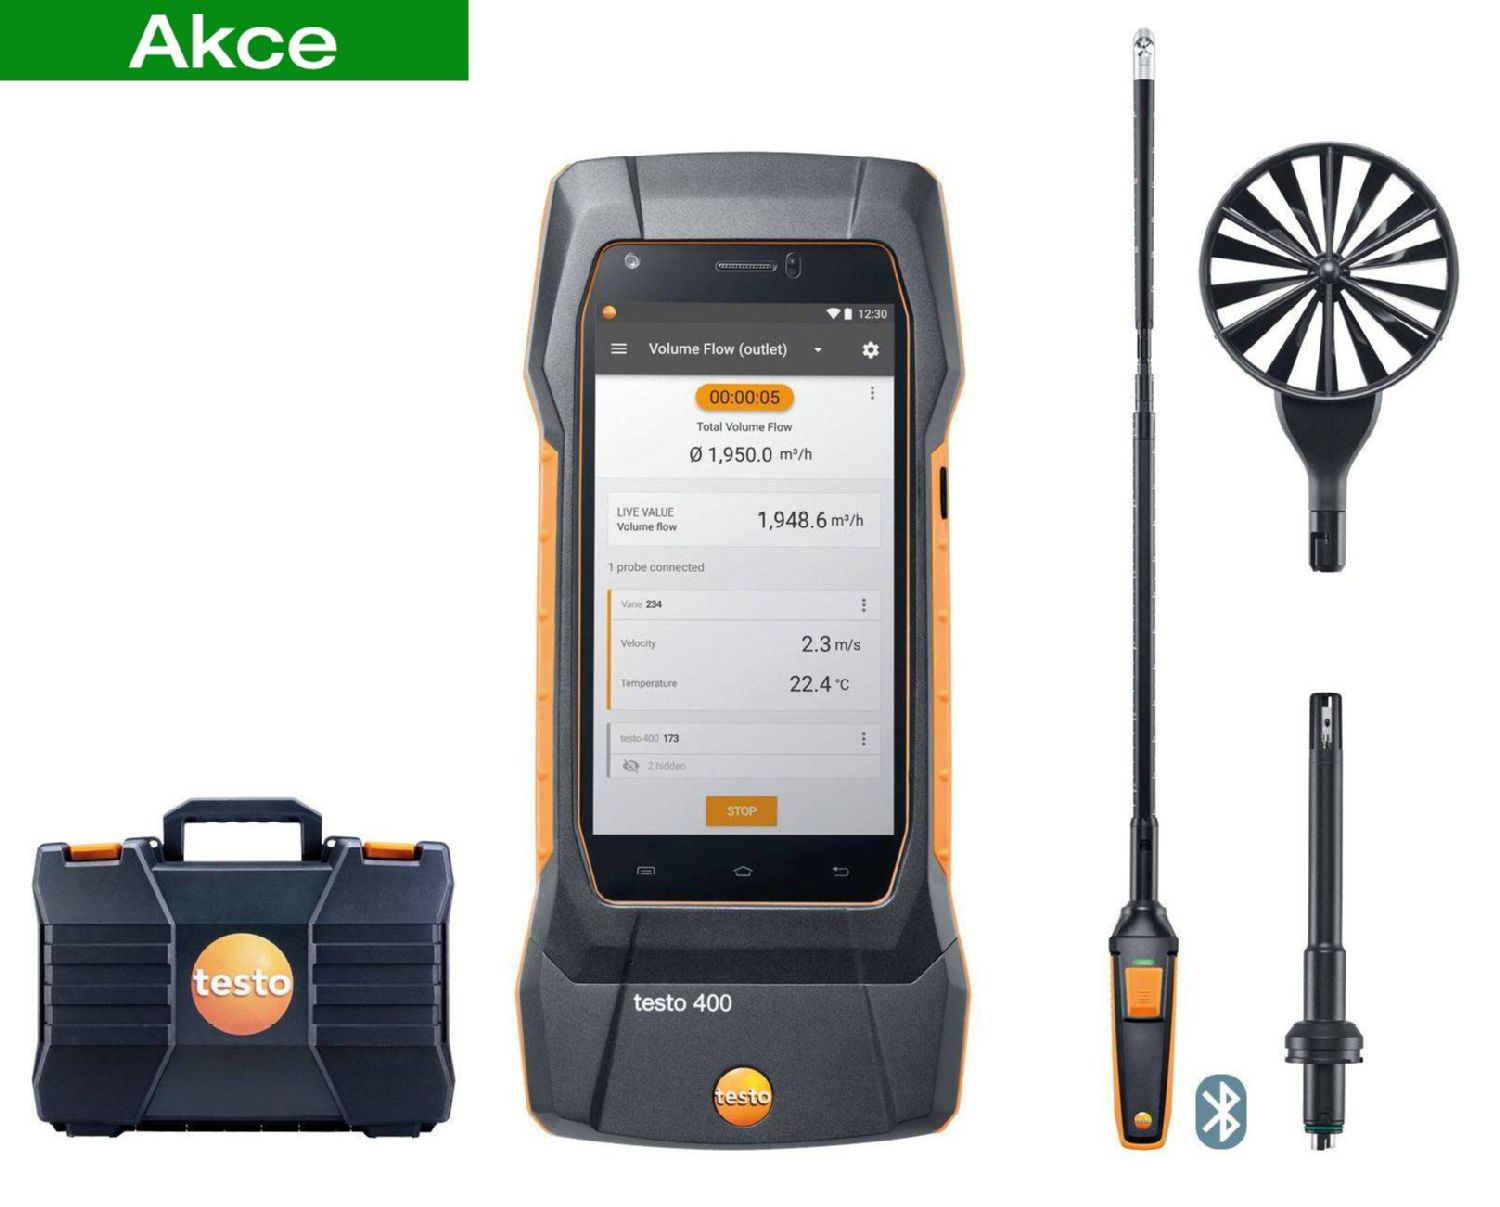 testo 400 air flow kit with 16 mm vane probe